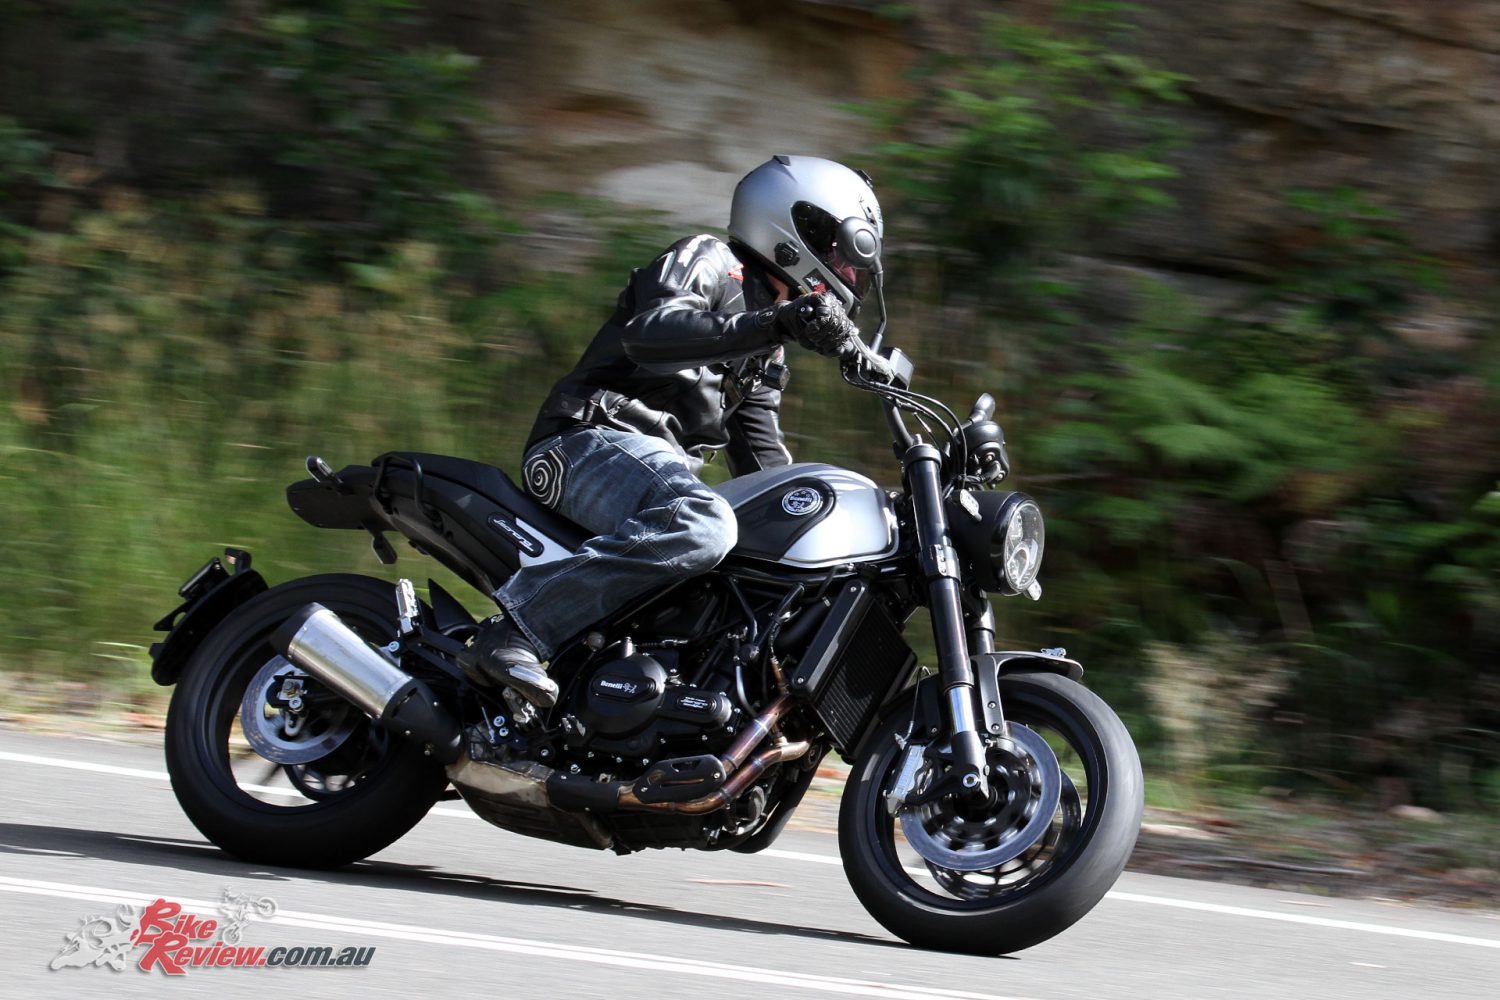 Benelli's Leoncino makes for a great entry or returning rider option.